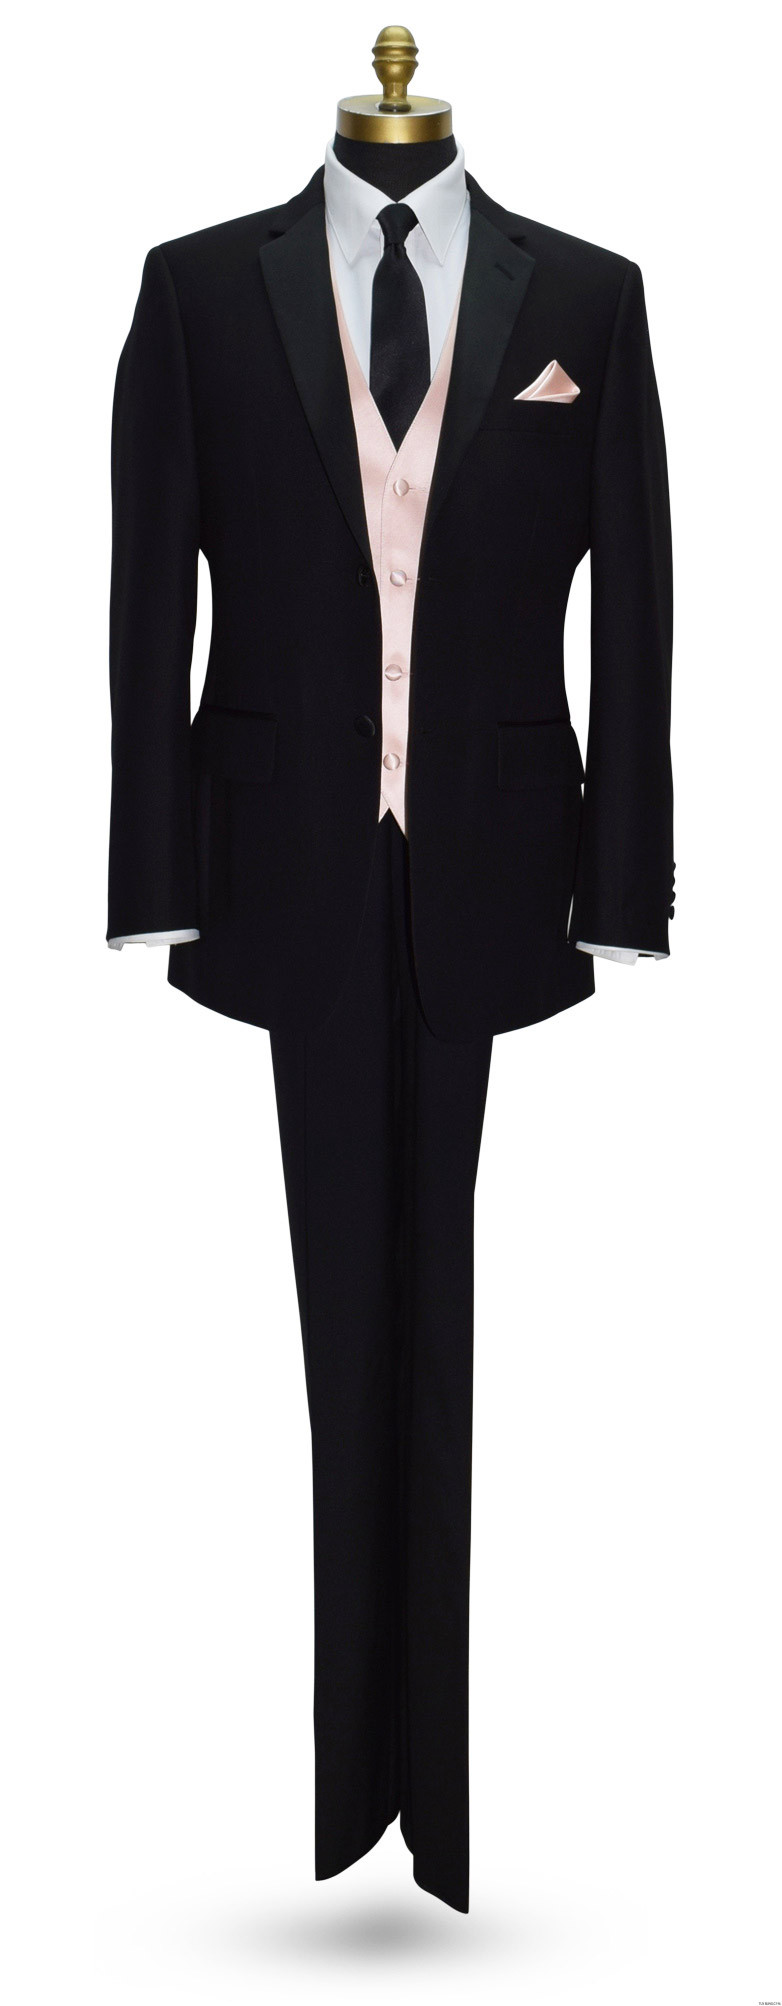 black tuxbling tuxedo with blush vest with black skinny dress tie